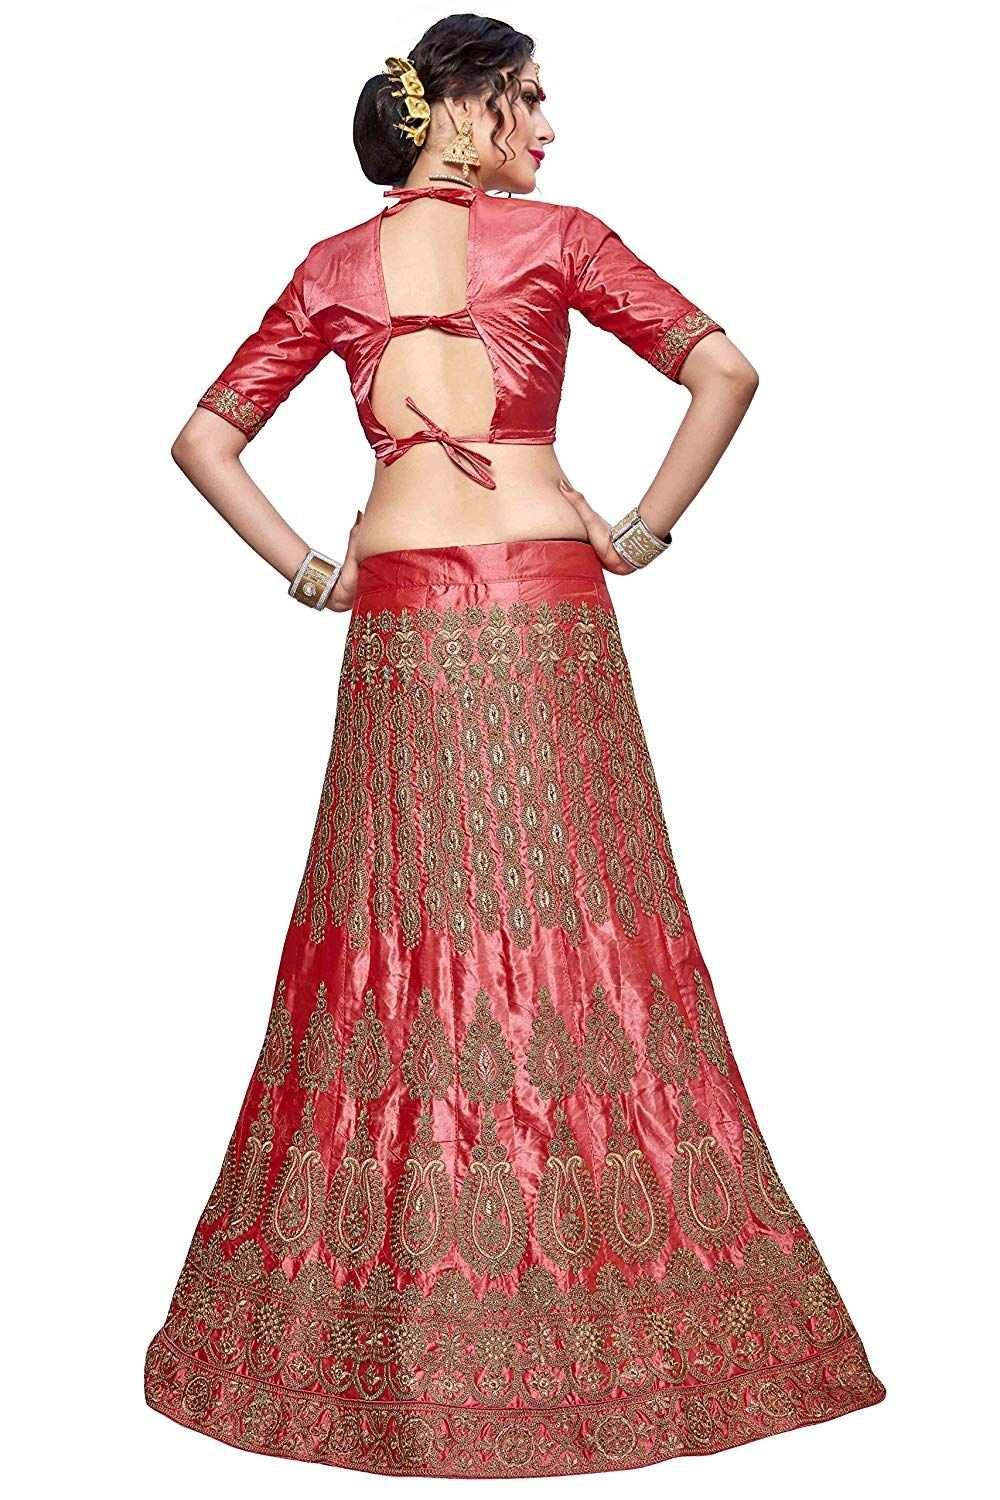 Manvaa bangalori silk women   embroidered lehenga in peach color amazon clothing also rh pinterest